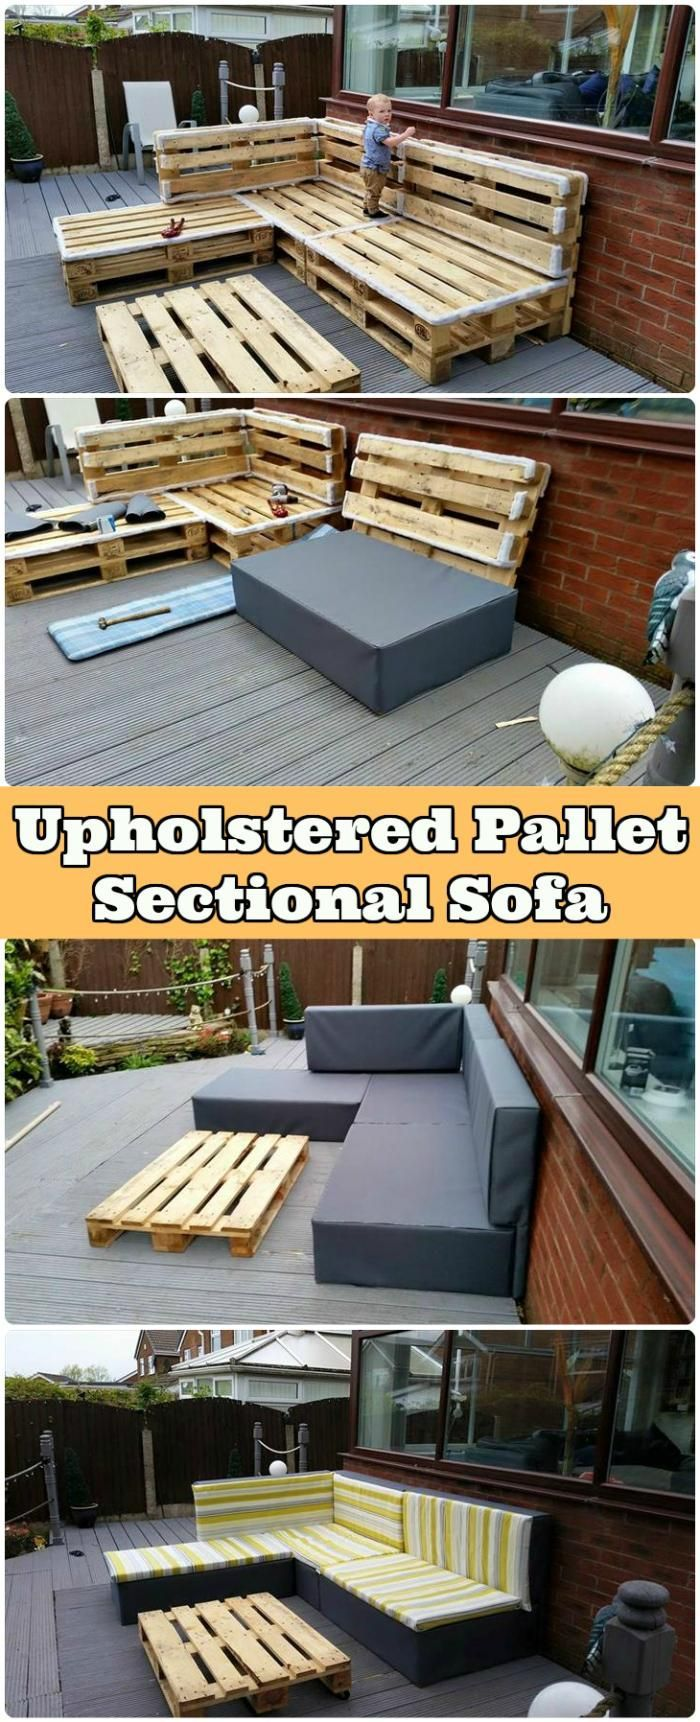 Upholstered Pallet Sectional Sofa - 150 Best DIY Pallet Projects and Pallet Furniture Crafts - Page 29 of 75 - DIY & Crafts